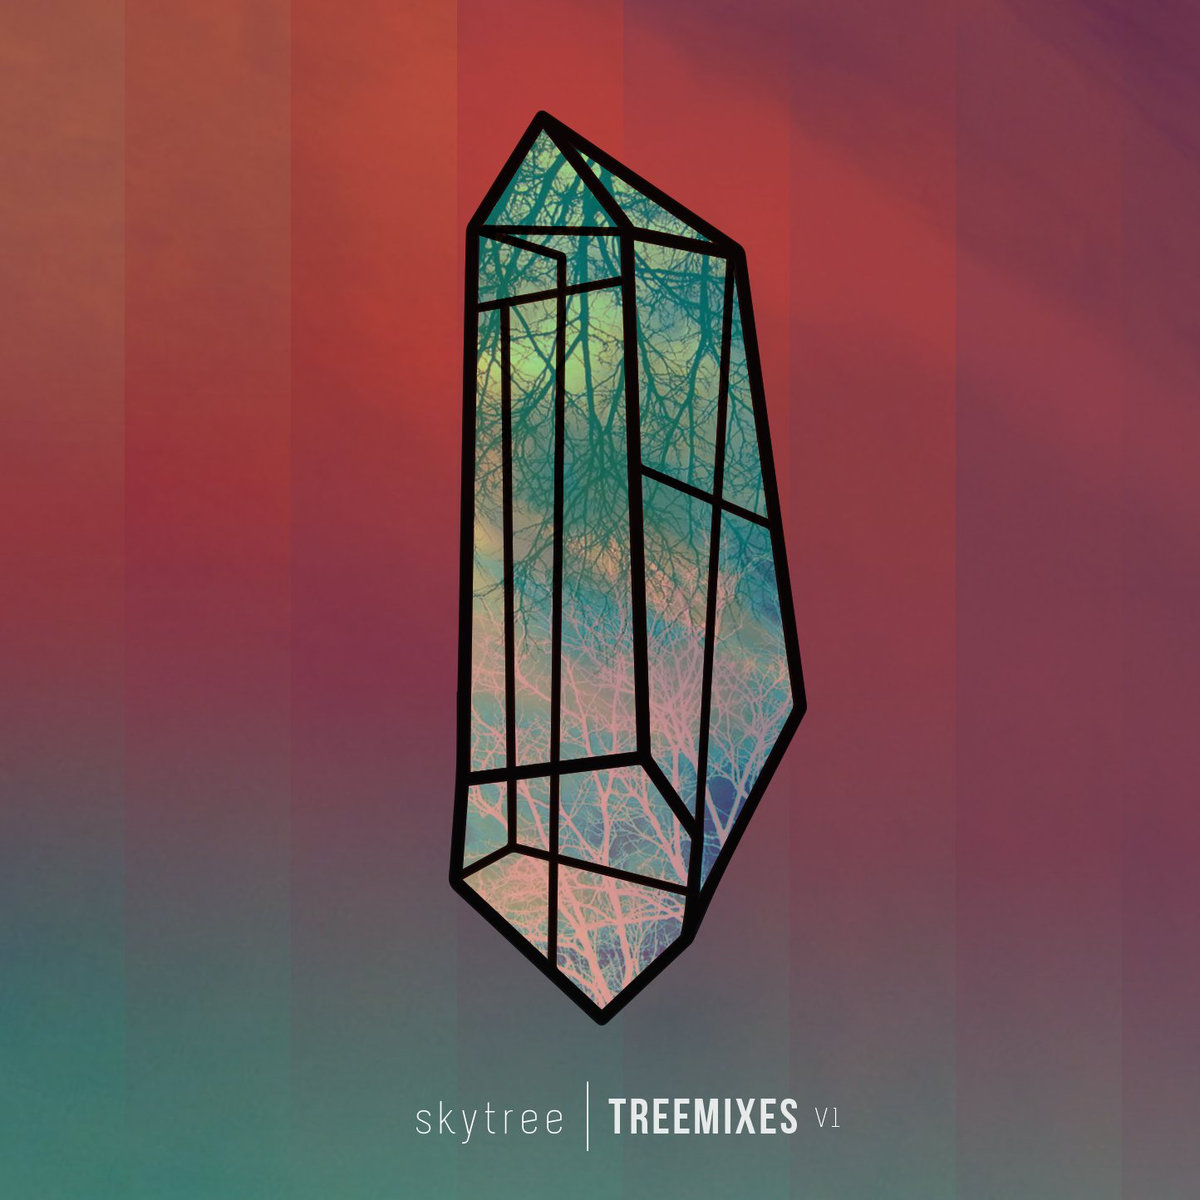 Skytree - Treemixes V1 (artwork)